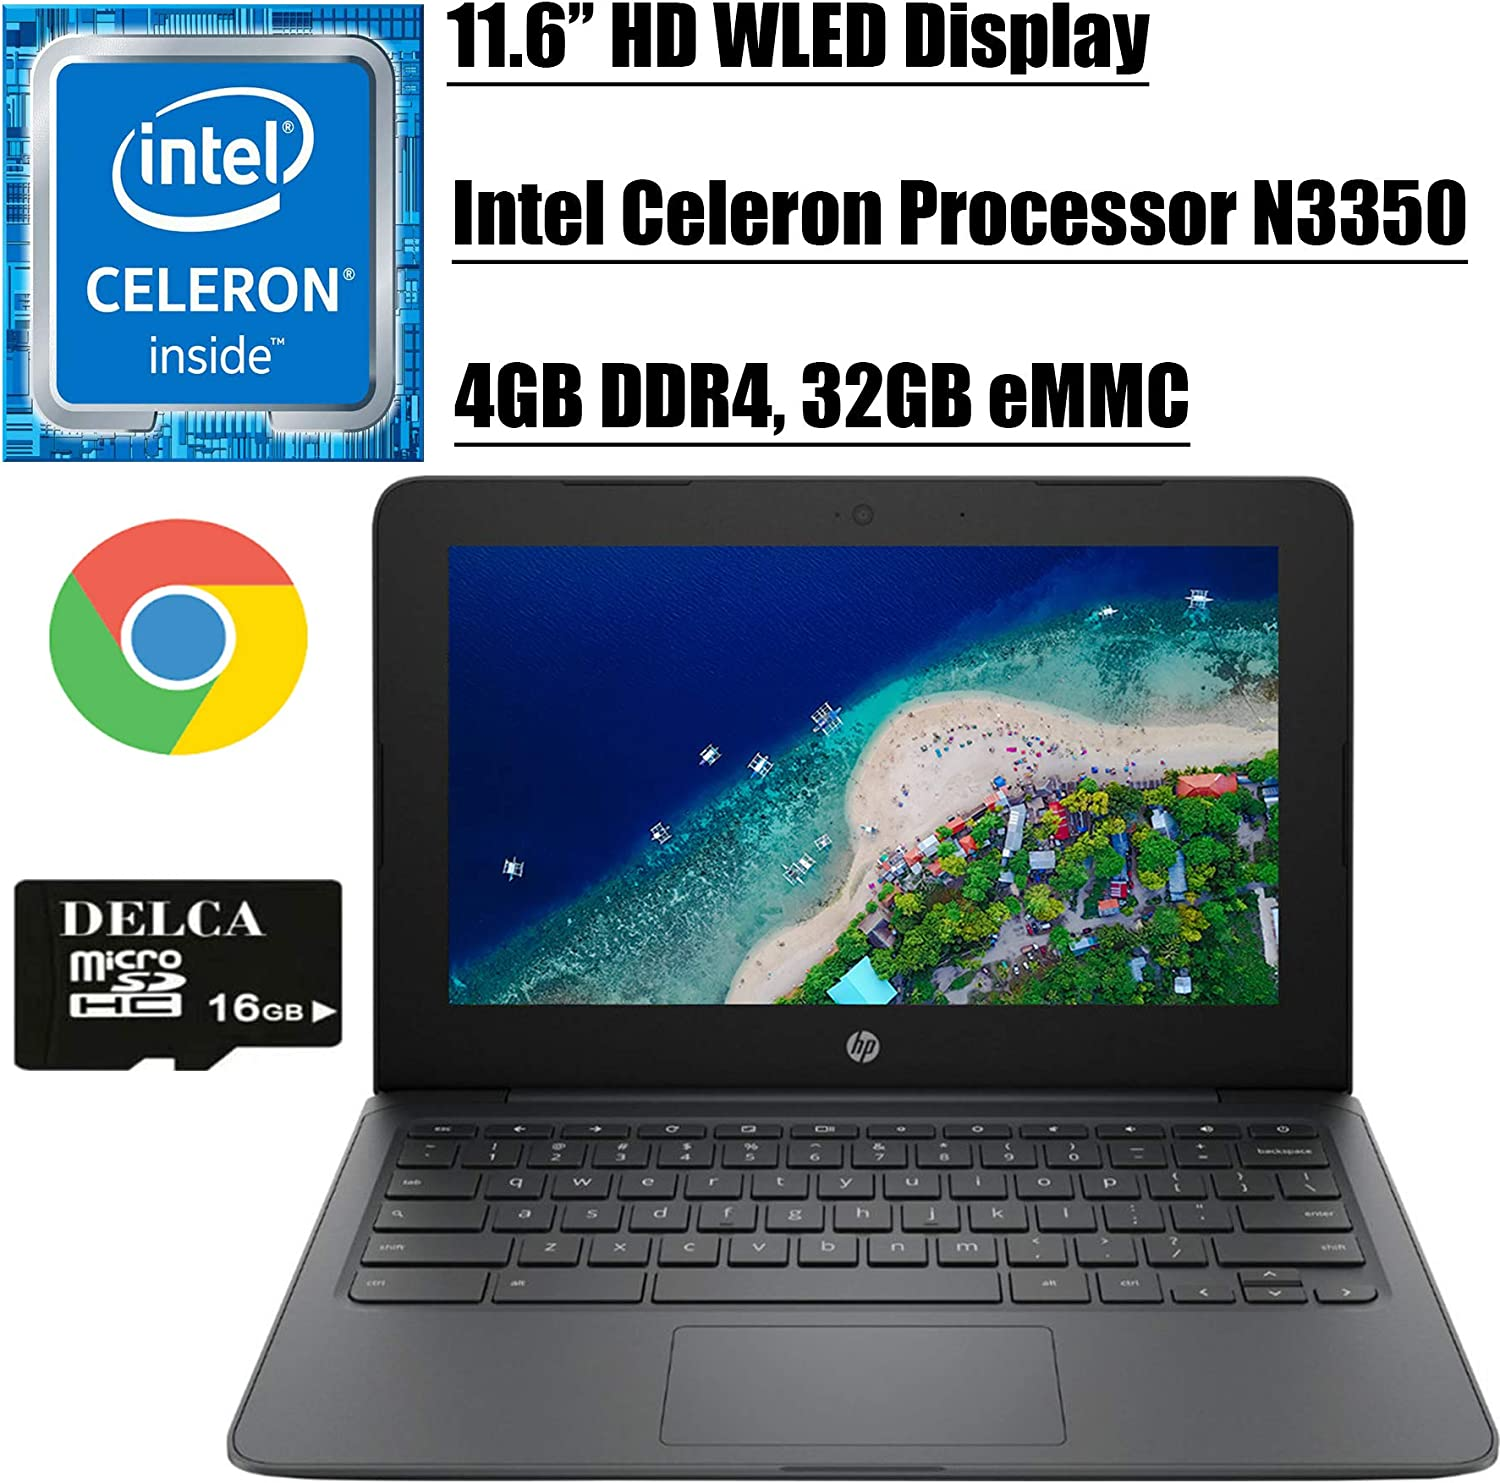 "HP Chromebook 11 2020 Flagship Laptop Computer I 11.6"" HD WLED Display I Intel Celeron Processor N3350 I 4GB DDR4 32GB eMMC I Webcam WiFi Type C Chrome OS + Delca 16GB Micro SD Card"